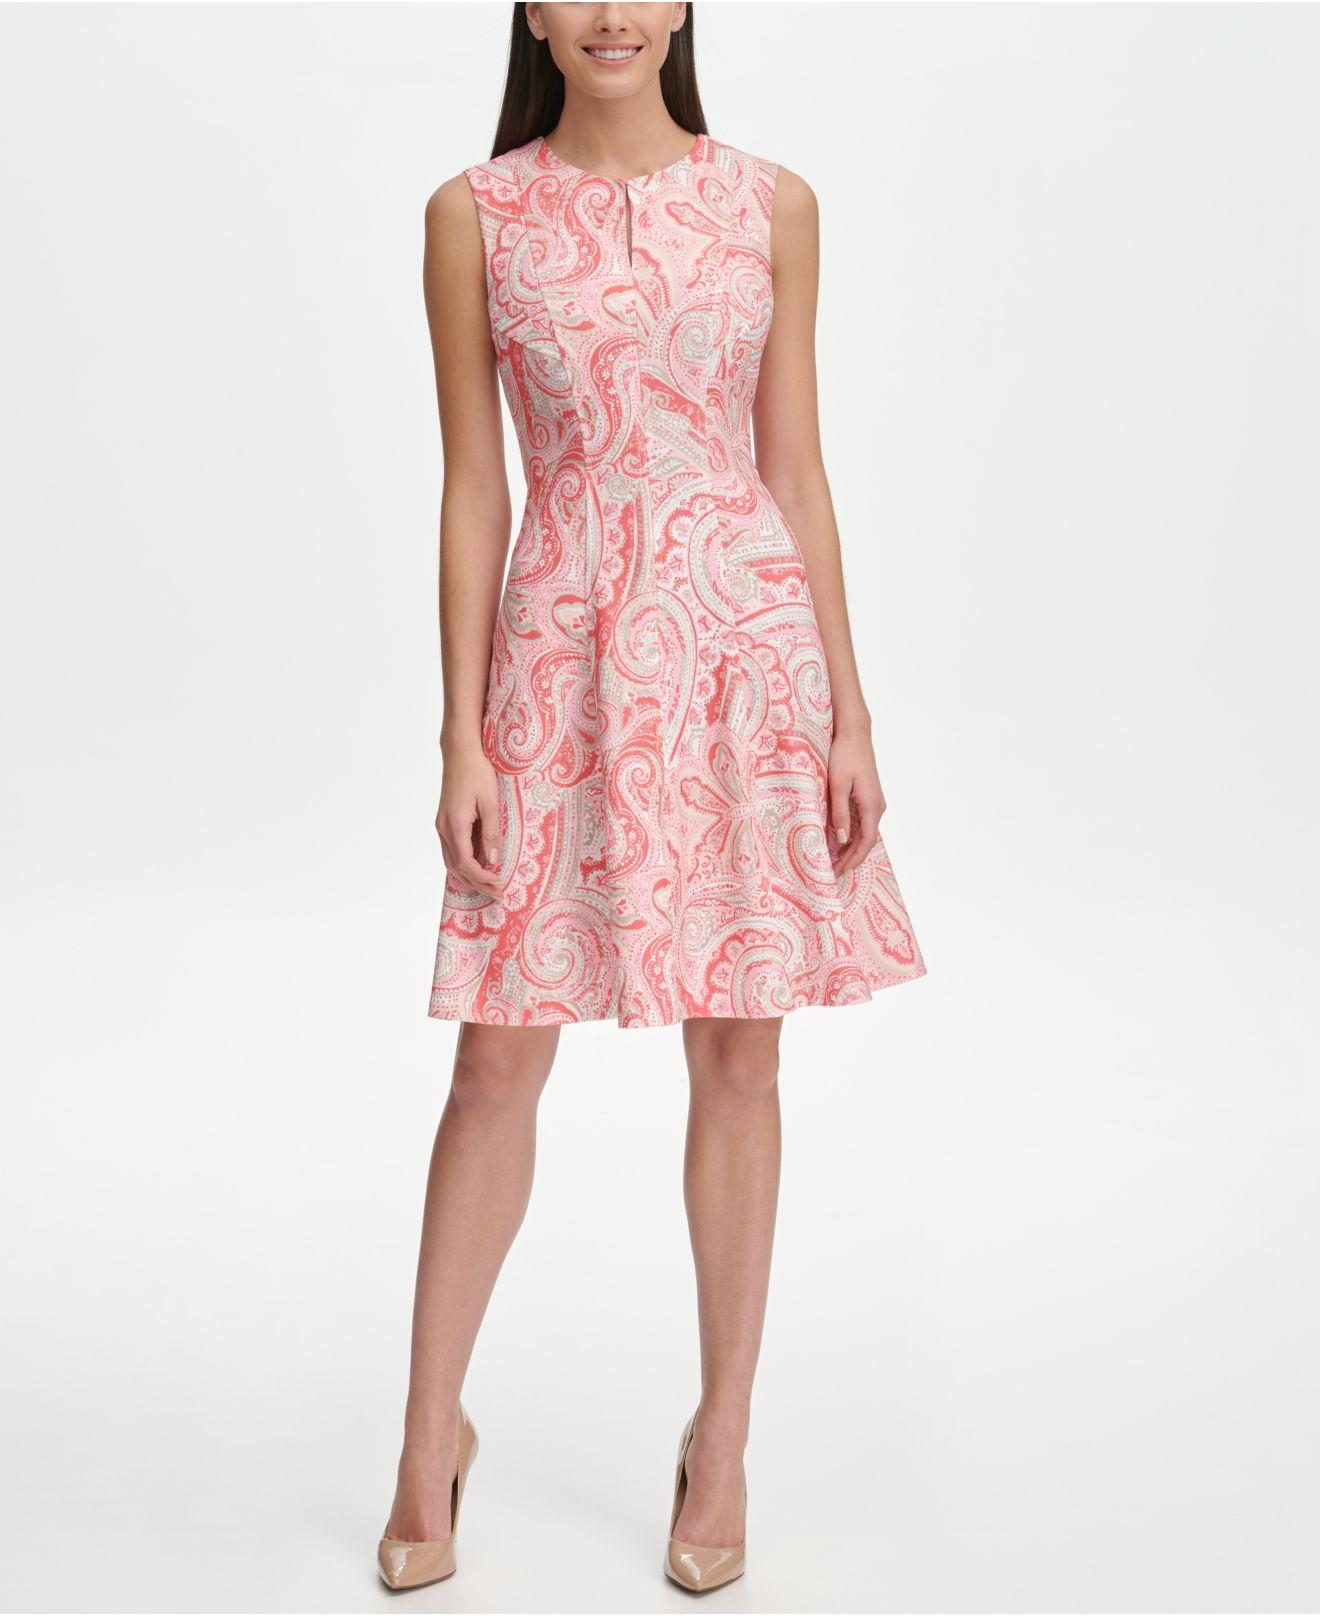 f9762625 Lyst - Tommy Hilfiger Fresco Paisley Fit-&-flare Dress in Pink